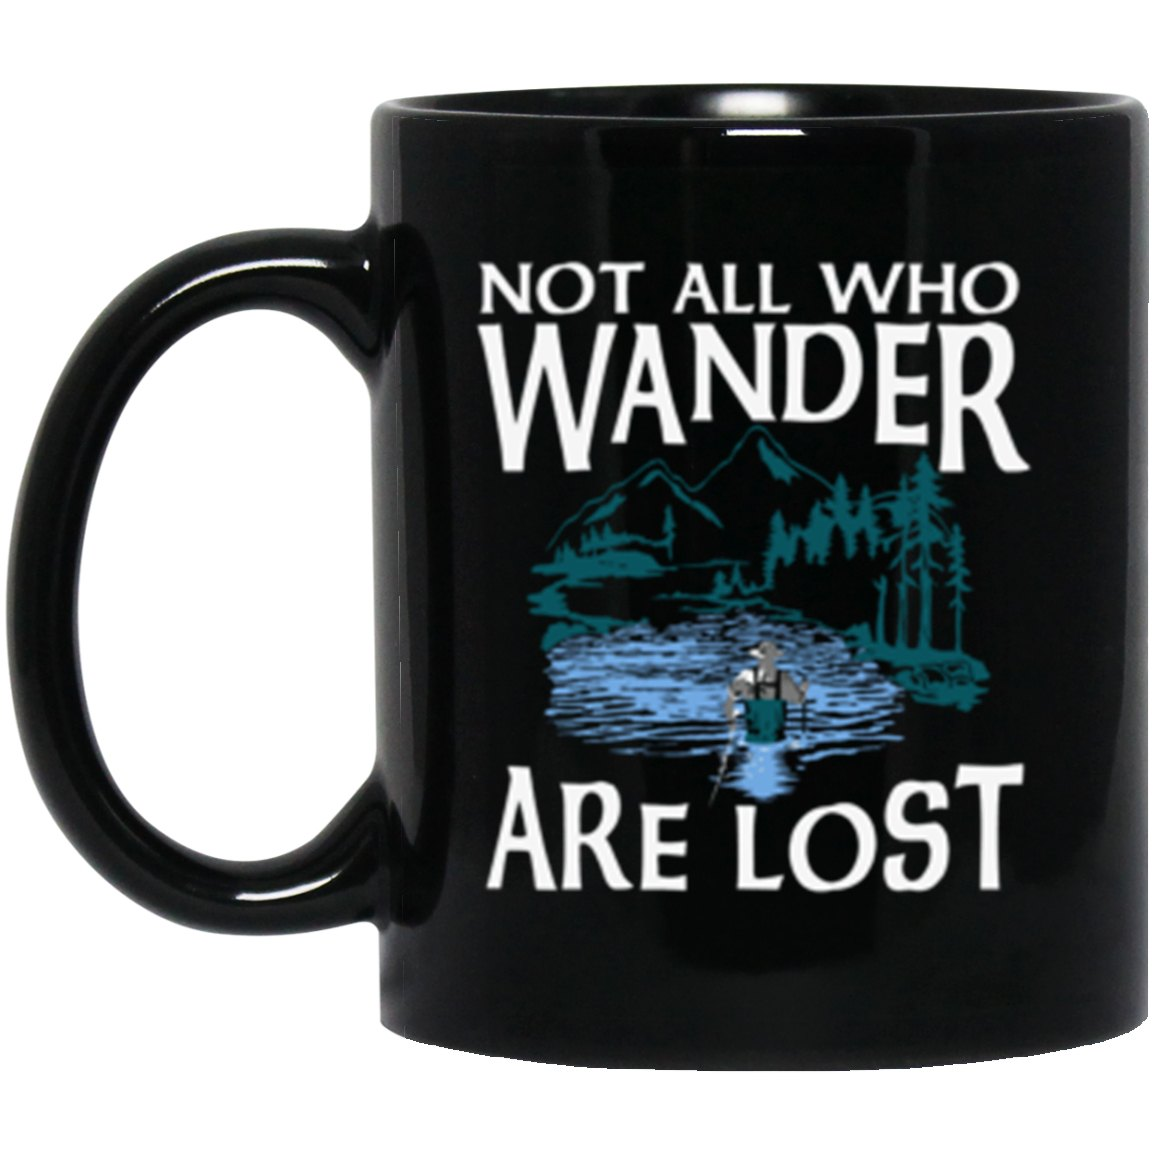 Drinkware - Fly Wander Mug 11oz (2-sided)